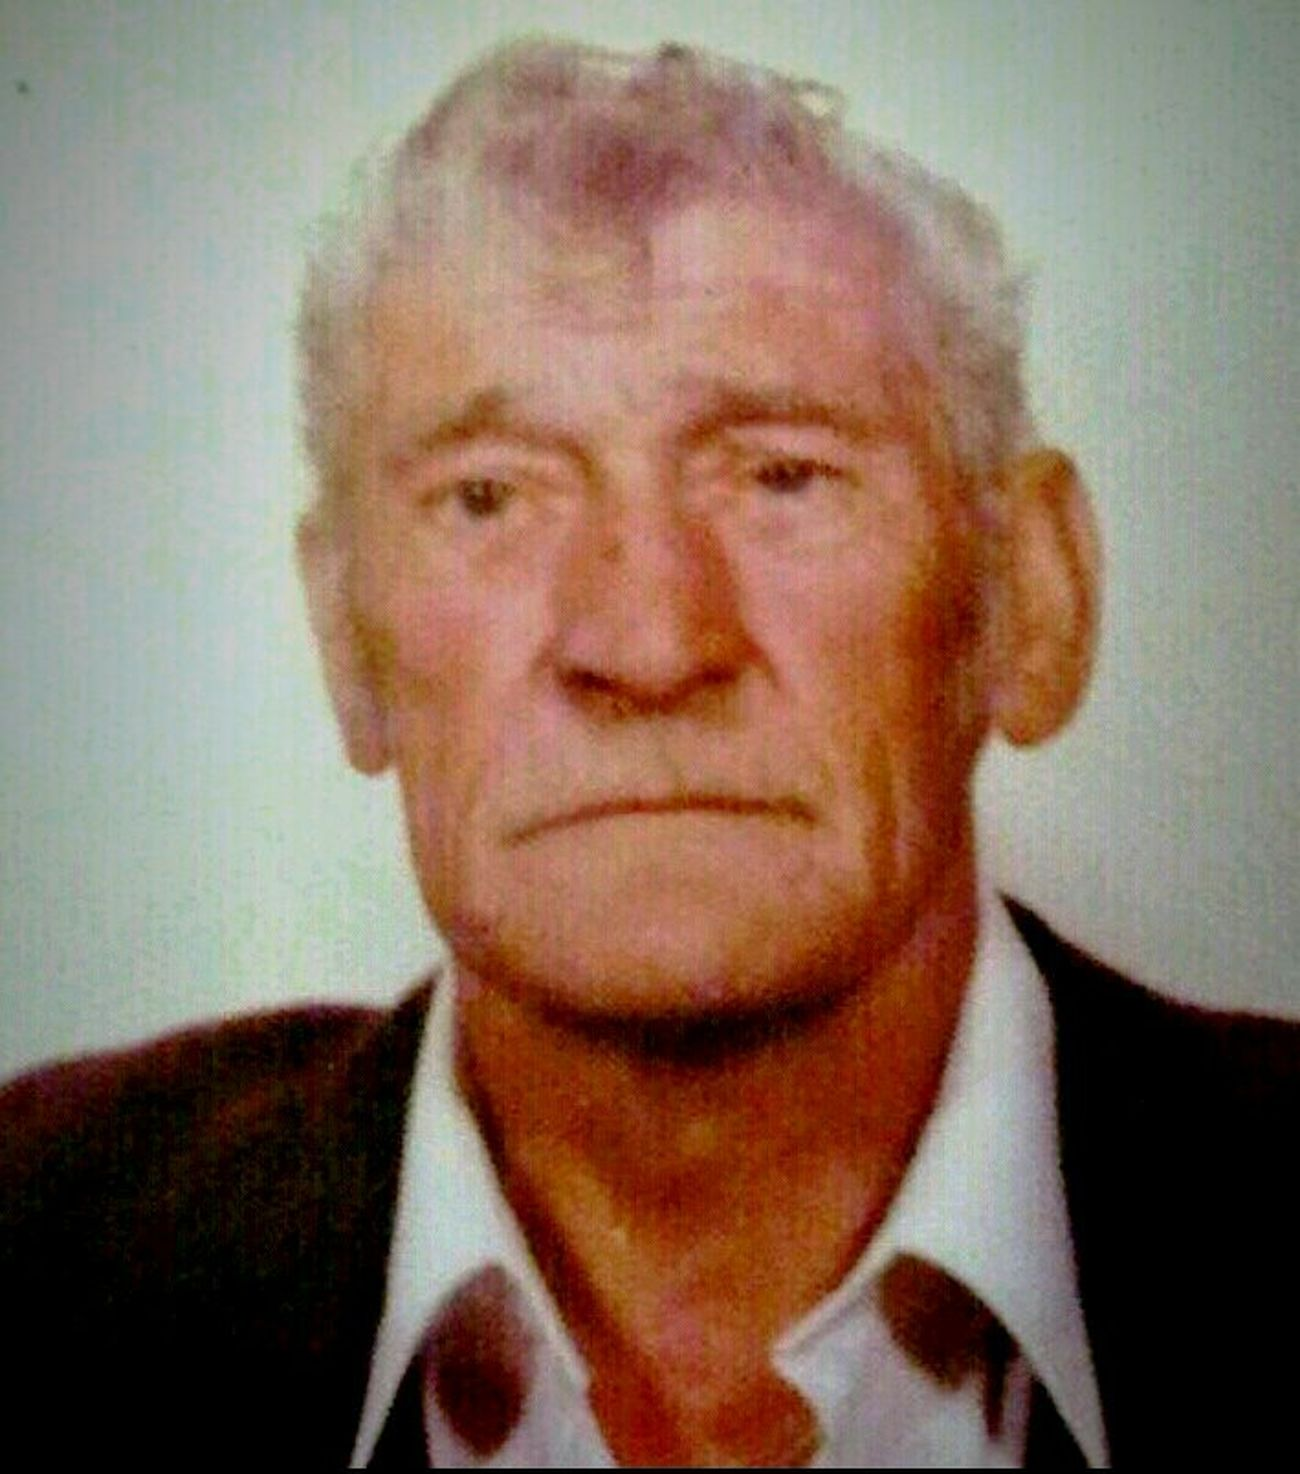 one of the most precious things in my life that could never be replaced. . my dad 1937-2000 and thought about every day still only pic I have of him